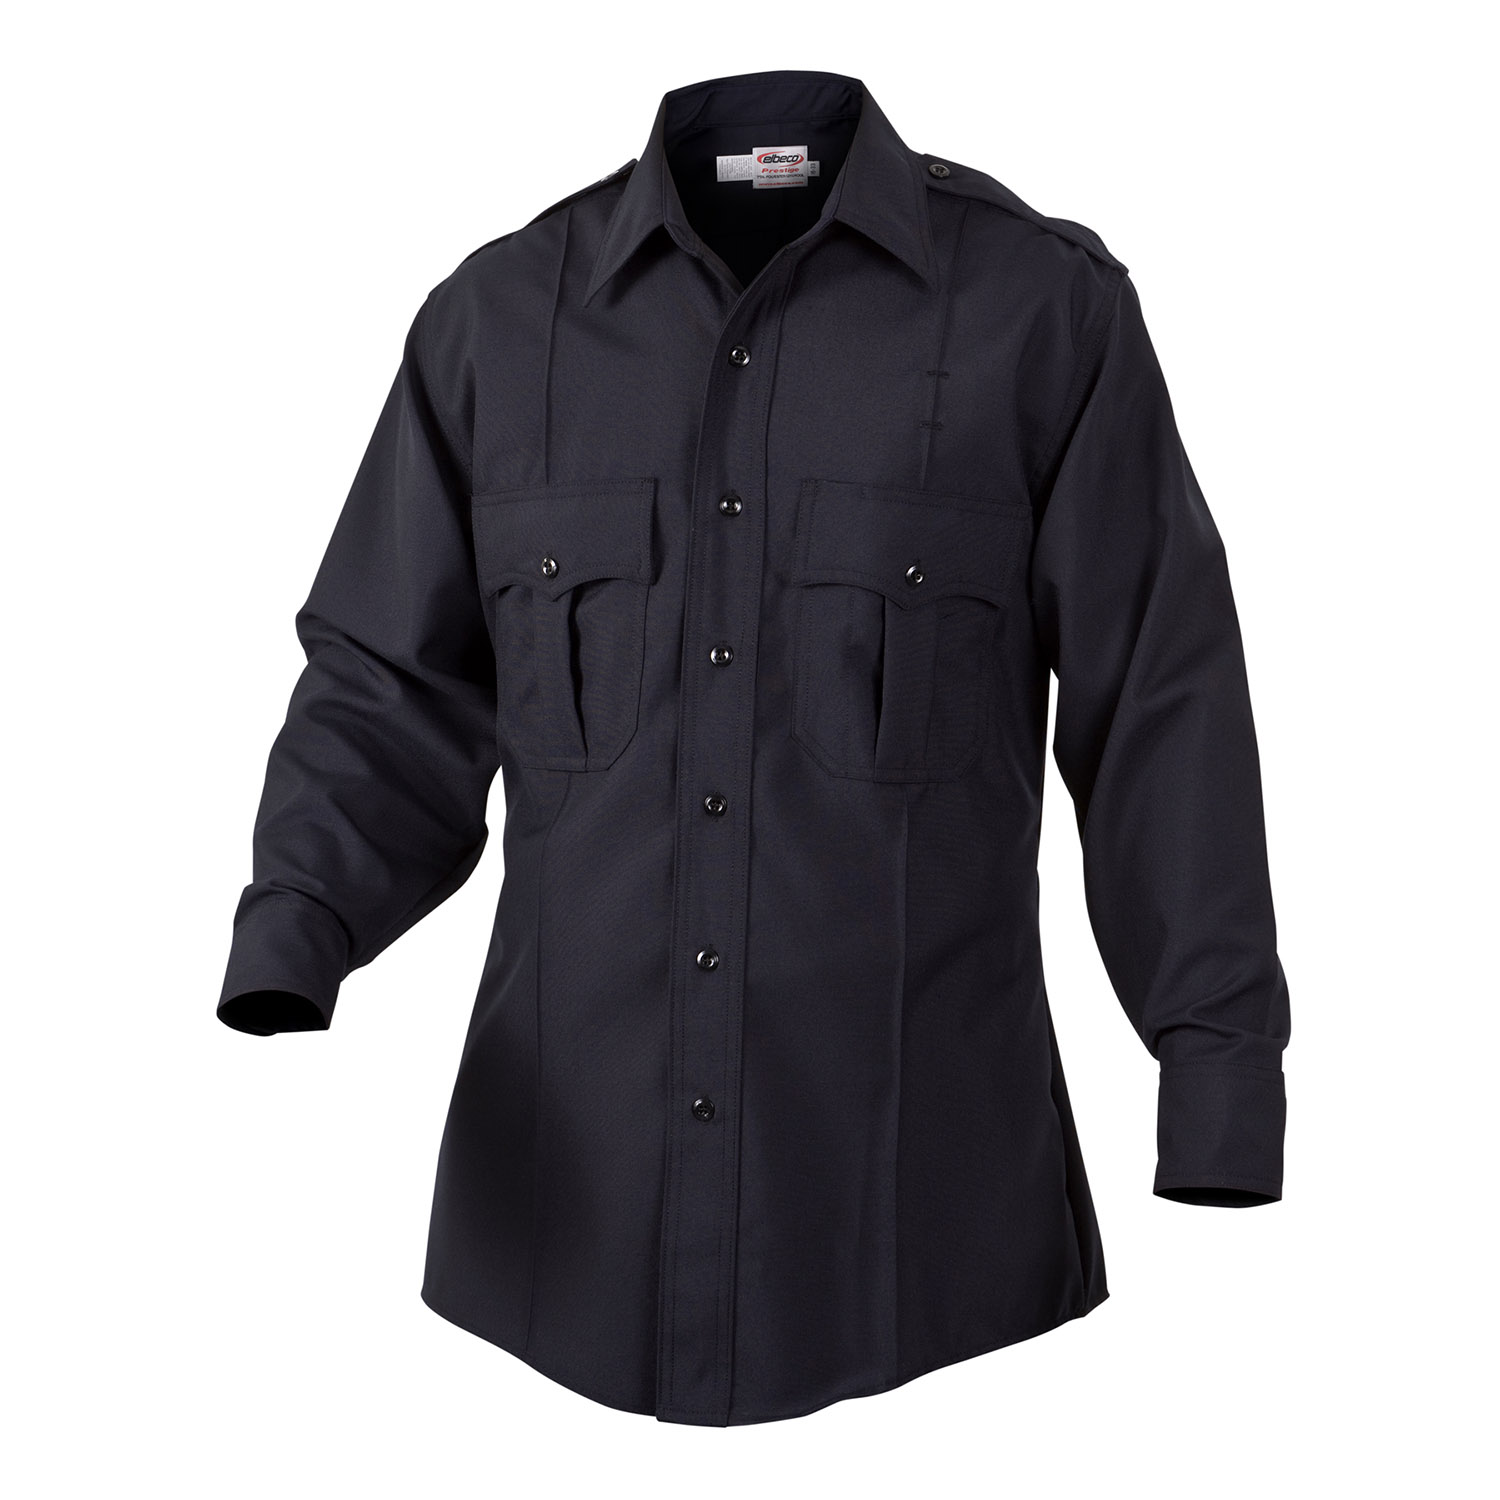 Elbeco Distinction Polyester/Wool Long Sleeve Shirt